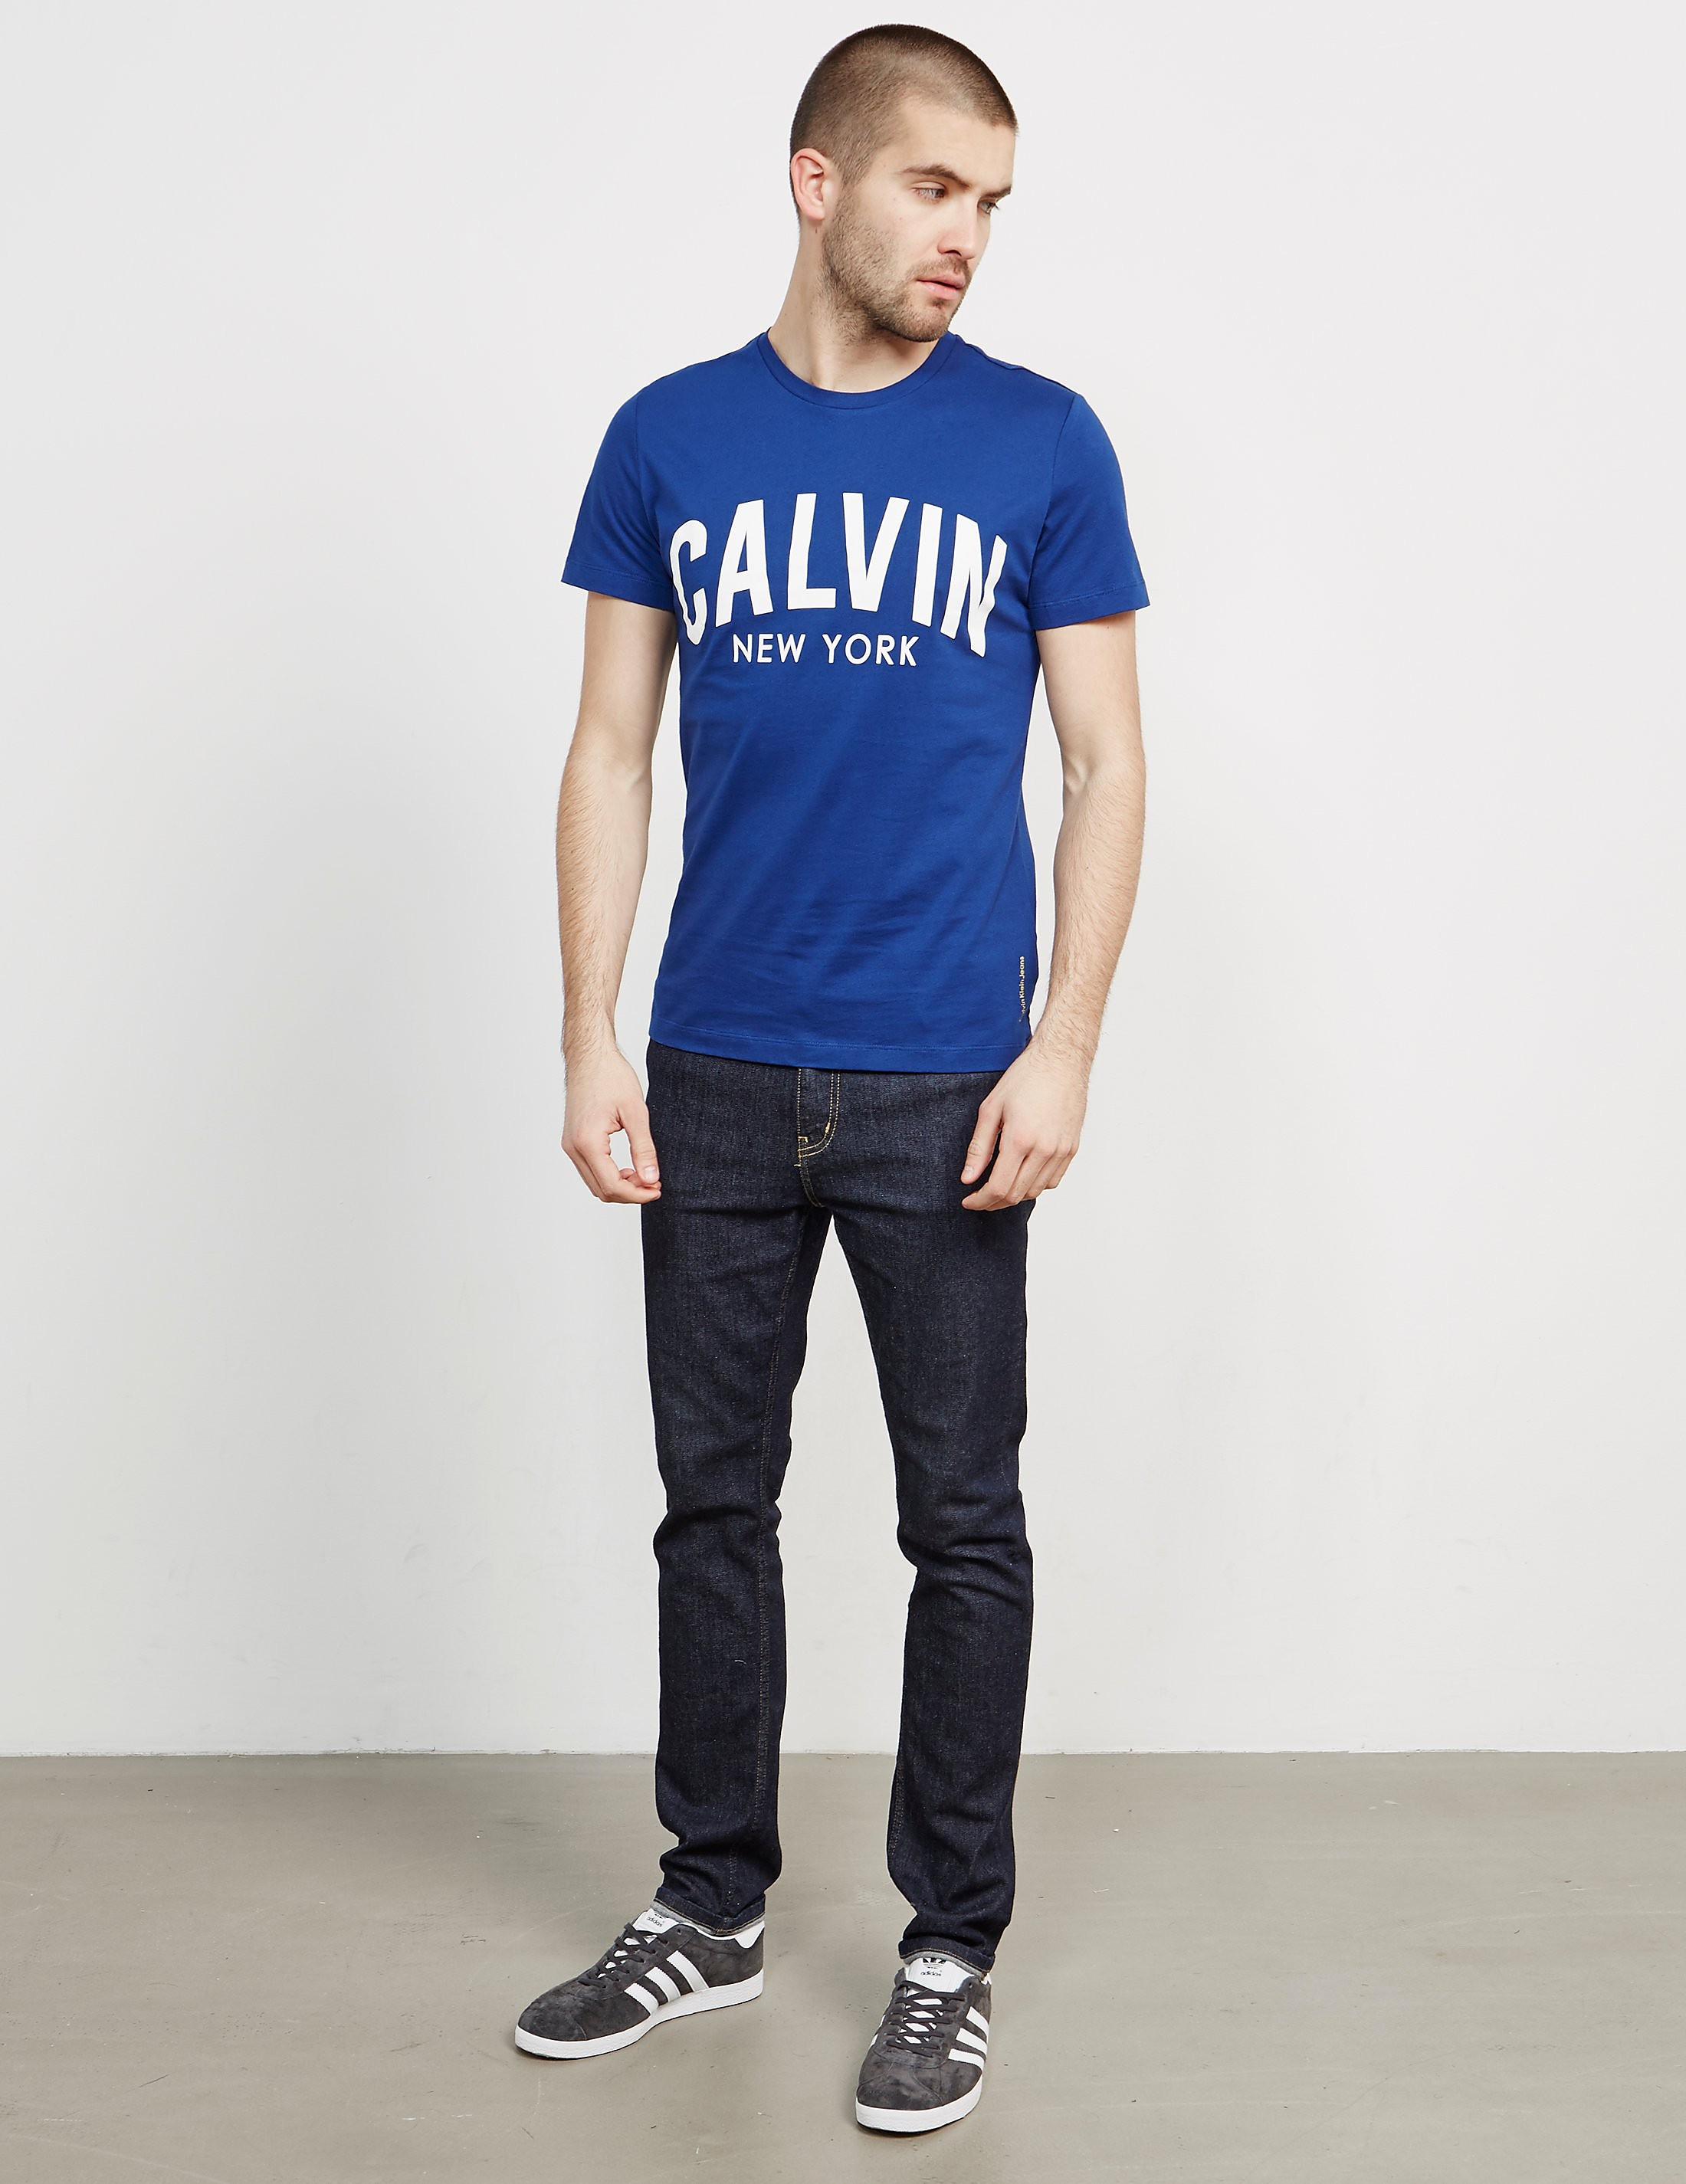 Calvin Klein New York Short Sleeve T-Shirt